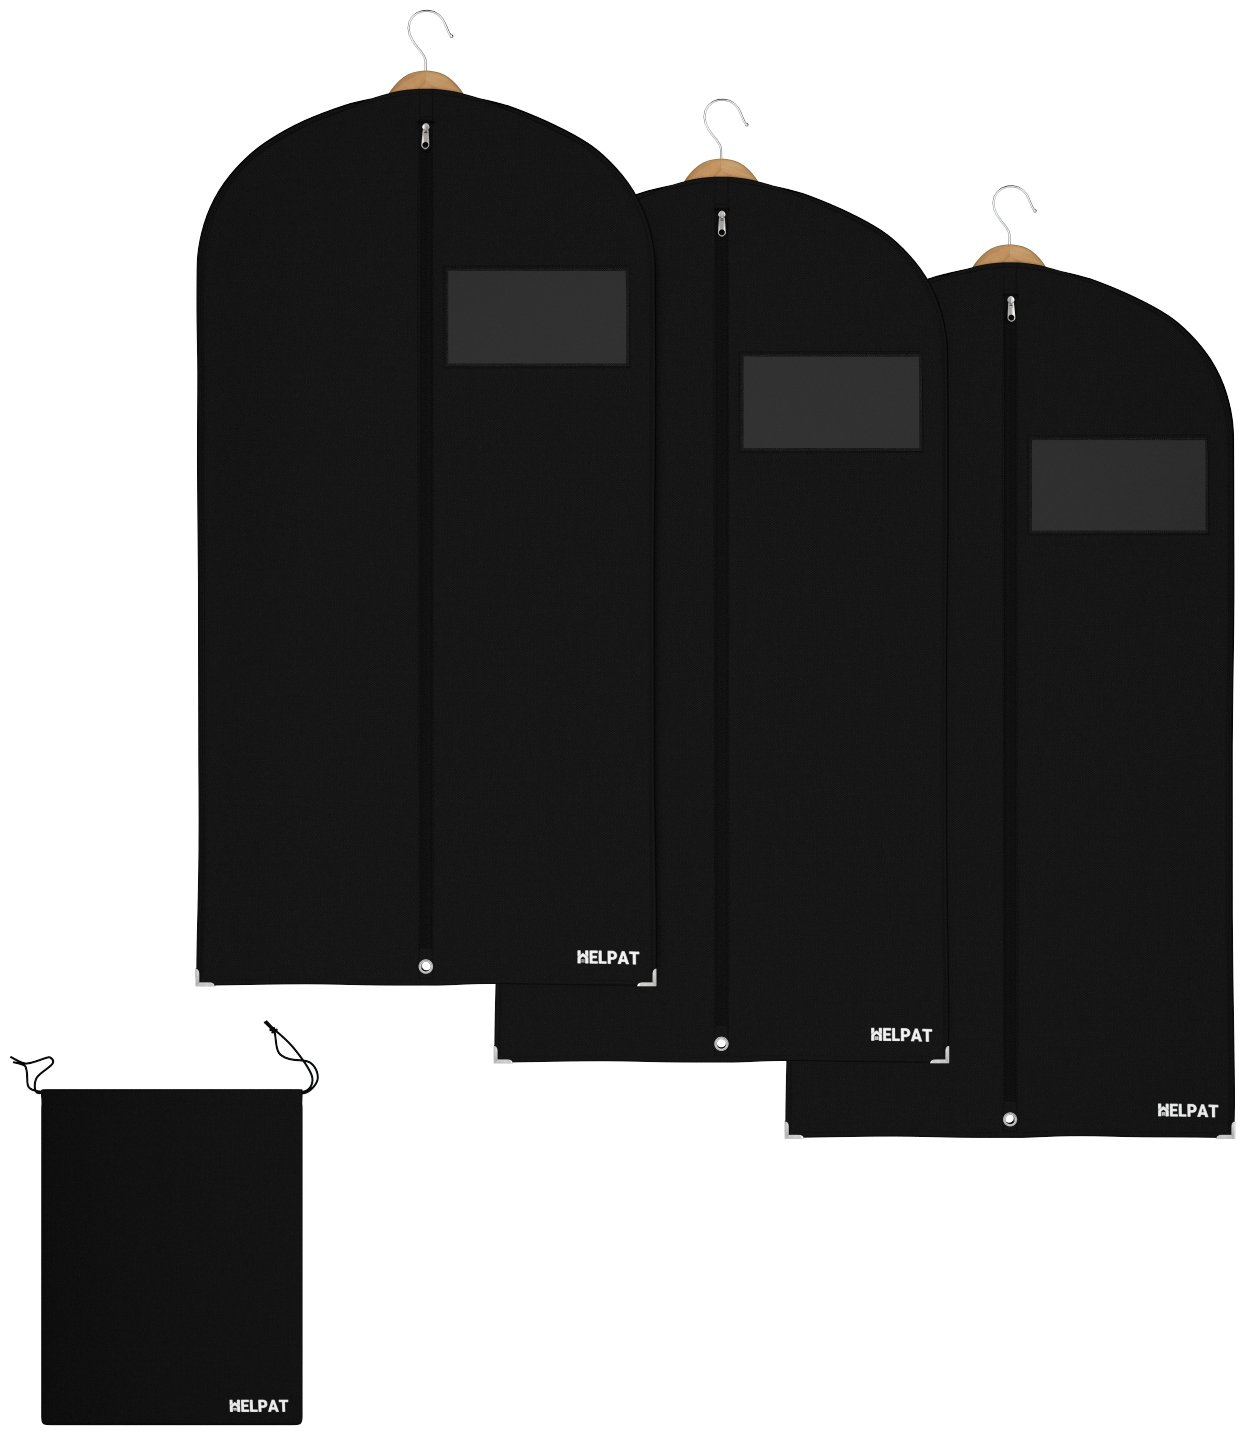 3x Premium Garment bags - incl. free shoe-bag - 100 x 60 cm – high quality suit-carrier / clothes-cover / breathable material suit-cover – first-class protection for your suits and clothes HELPAT